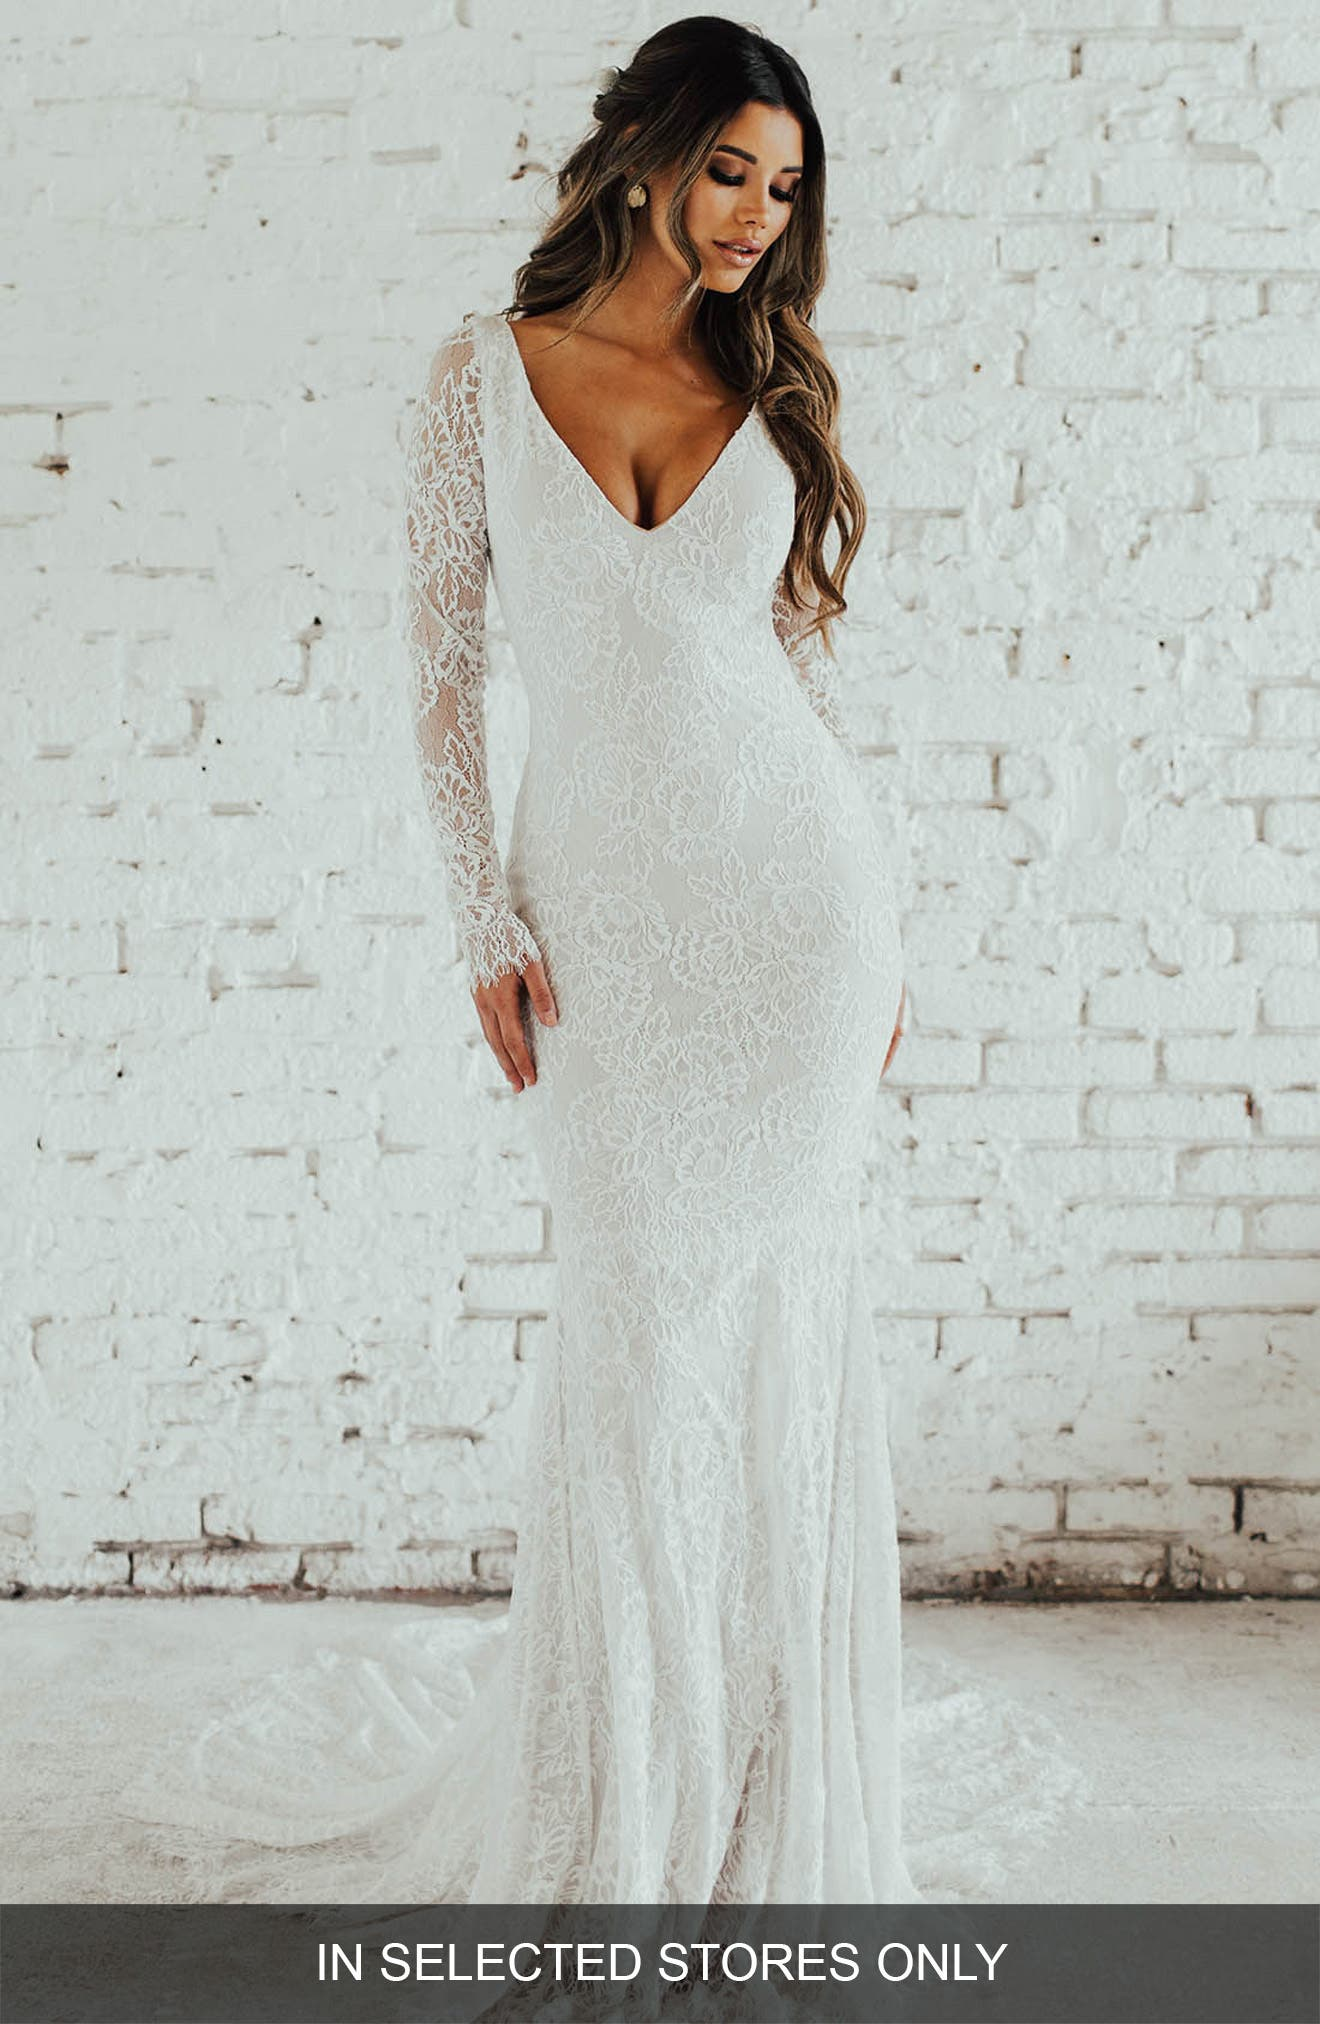 San Sebastian Lace Mermaid Gown,                         Main,                         color, Ivory/ Nude